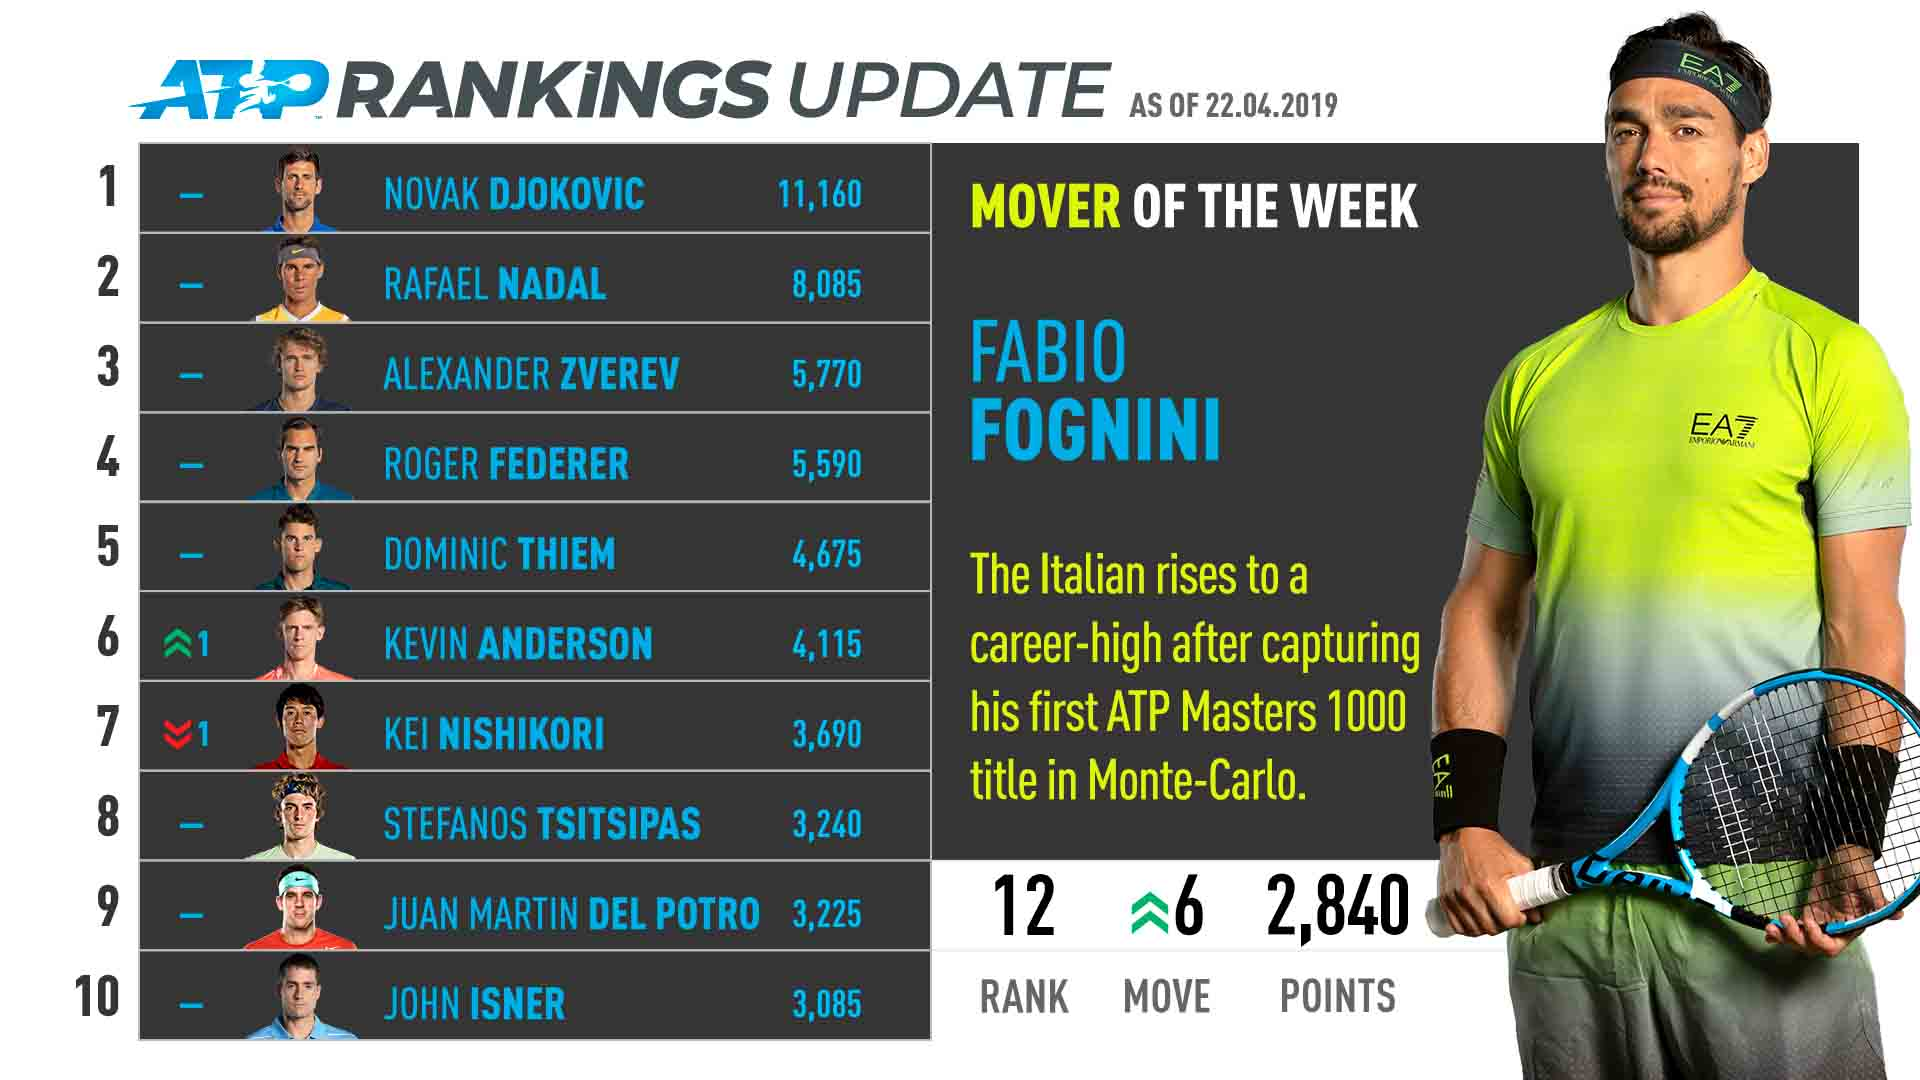 Fabio Fognini rises to a new career-high No. 12 in the ATP Rankings after lifting the Rolex Monte-Carlo Masters trophy.